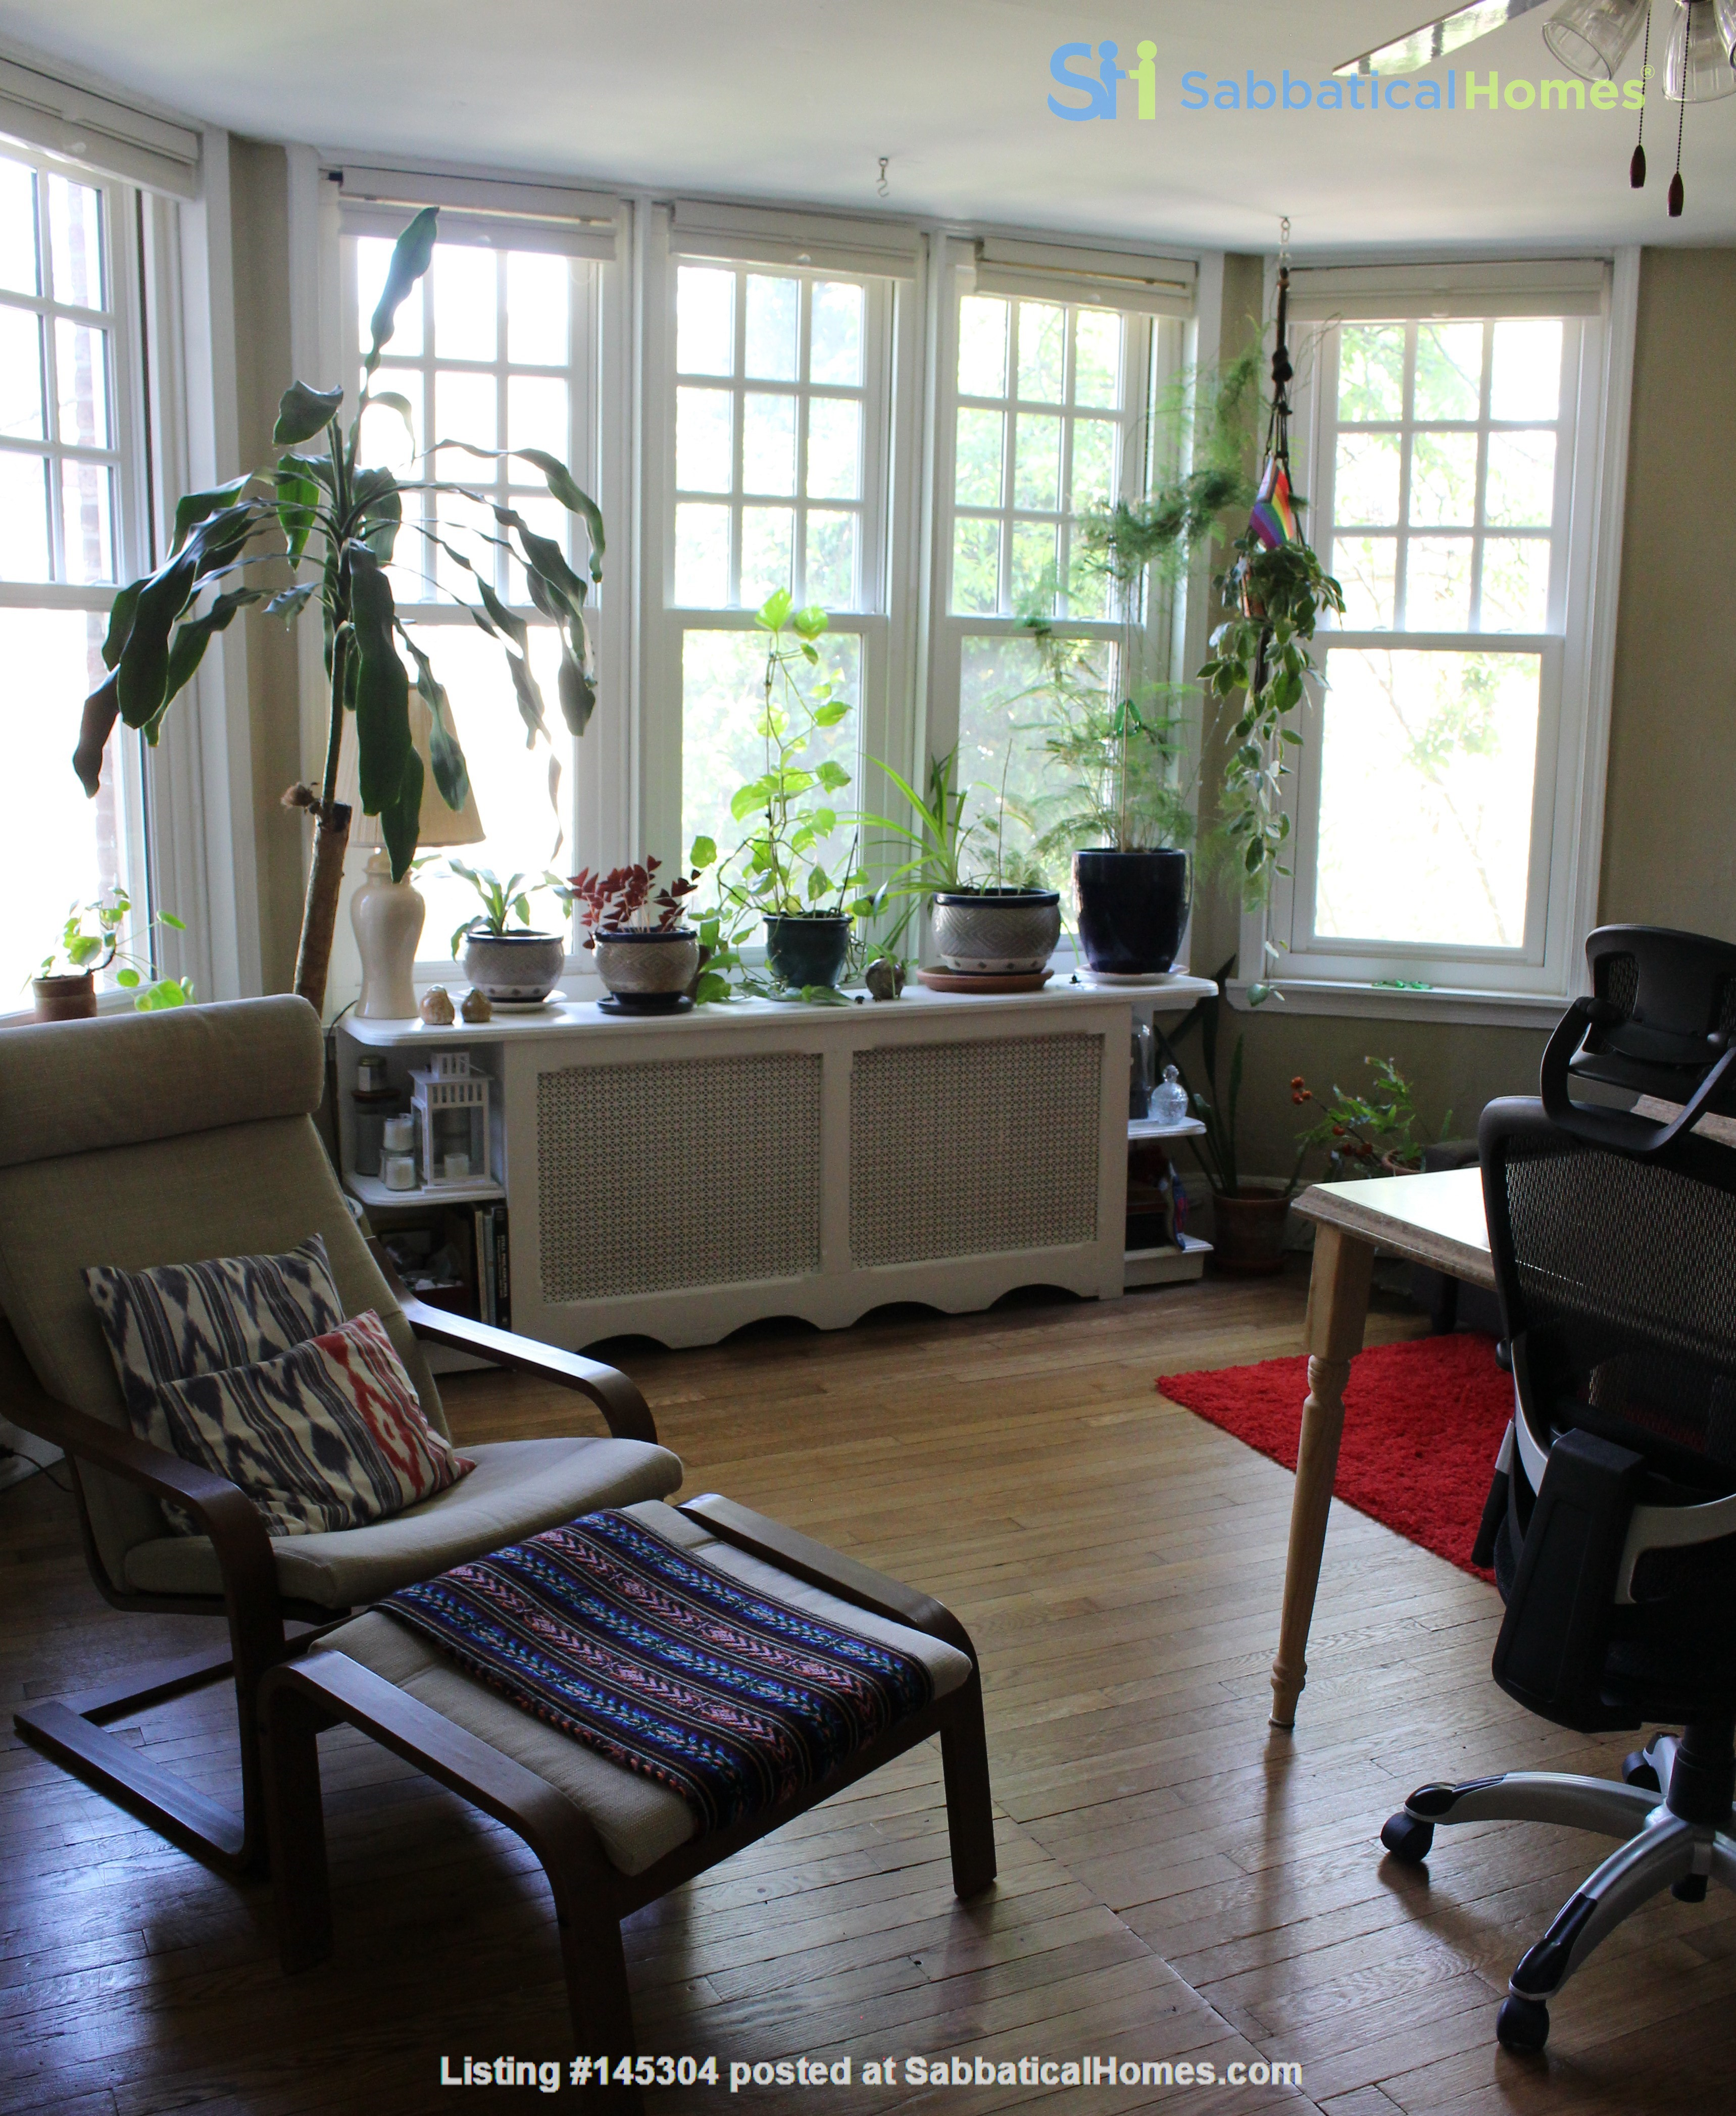 1 BR Condo for long-term lease comes w pool, gym and charm! Home Rental in Philadelphia, Pennsylvania, United States 1